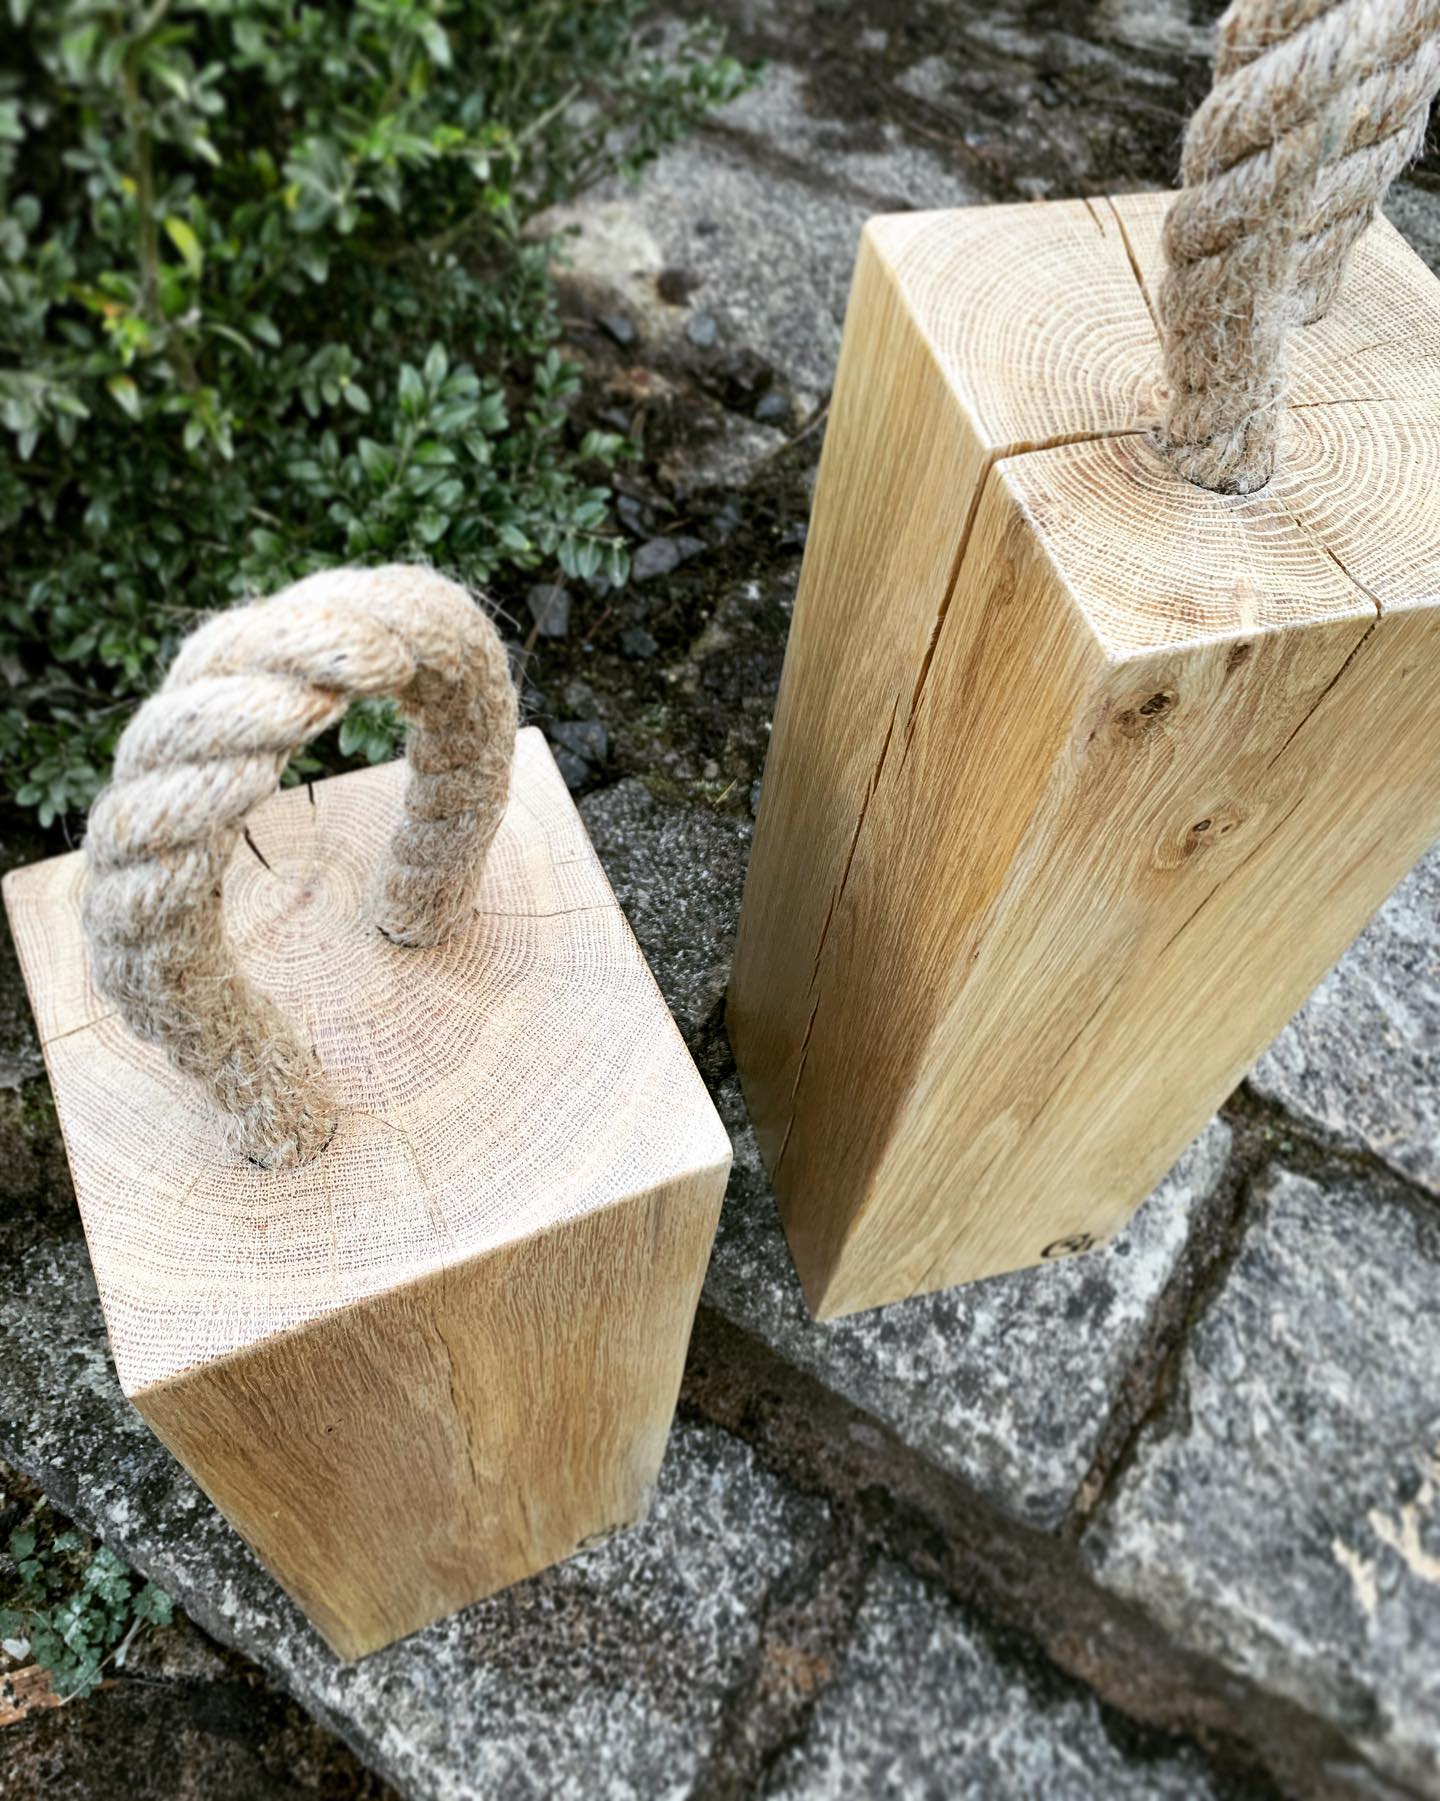 These enormous beauties are for sale!£59 each plus shipping. ONLY 2 AVAILABLEThey're solid oak with a rope handle, measuring 15cm x 15cm x 45cm tall (not inc rope) and weighing around 8.5kg. Perfect for heavy doors or those with a step. With the signs of spring arriving this week, it's a great time to be propping those doors open and letting in the fresh air.Please comment or DM of you'd like one (or both) of these...#springisintheair #firstsignsofspring #opendoor #freshaor #oak #doorstop #handcrafted #home #ginger #tweed